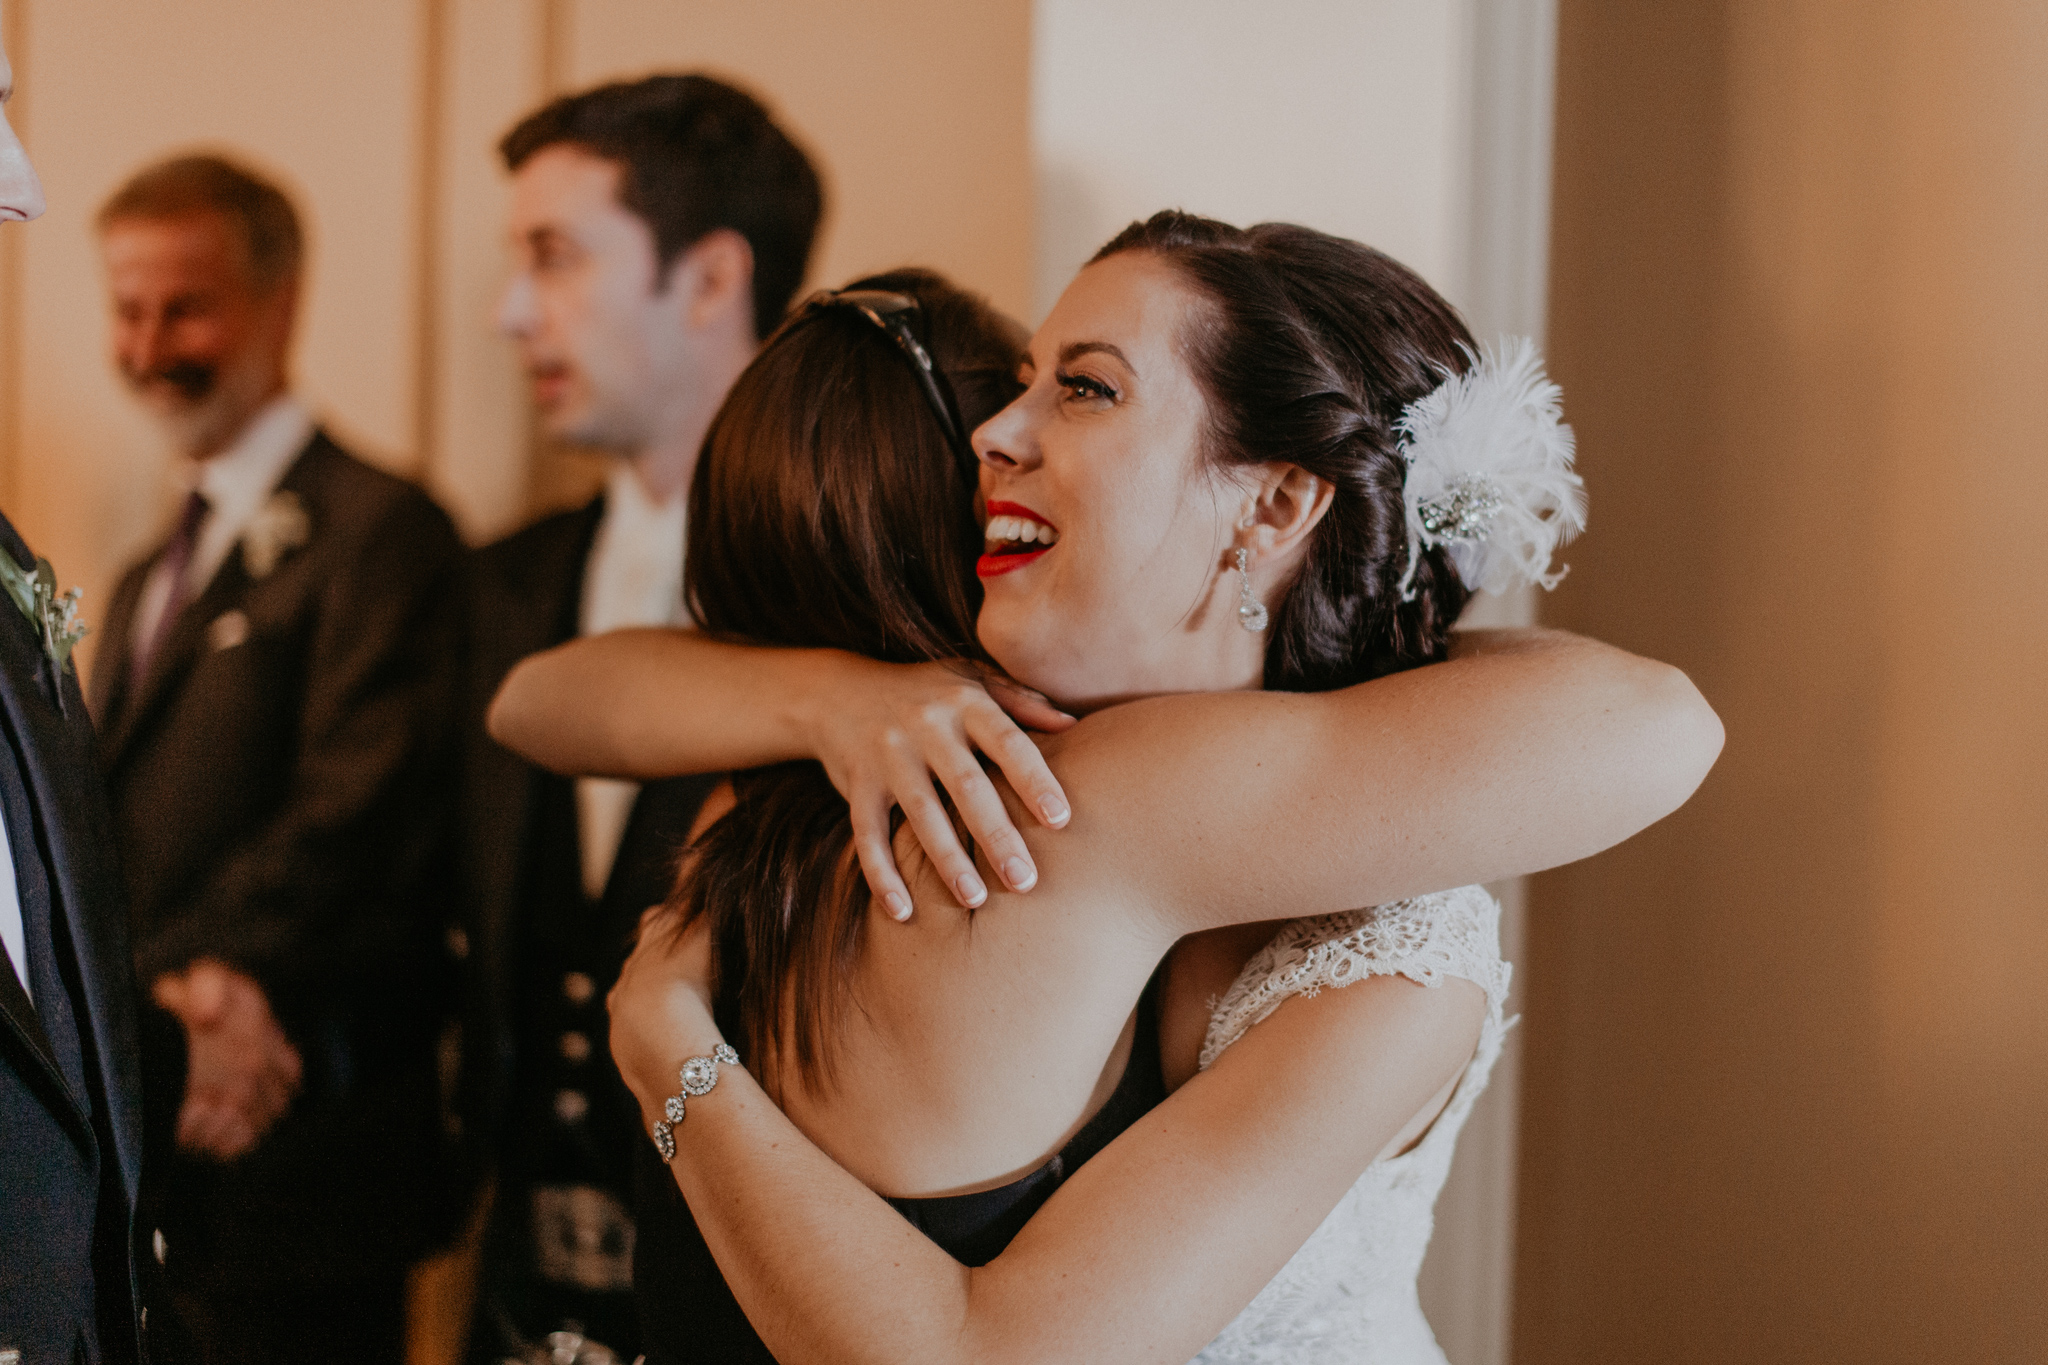 Bride hugs guest in candid documentary wedding photo